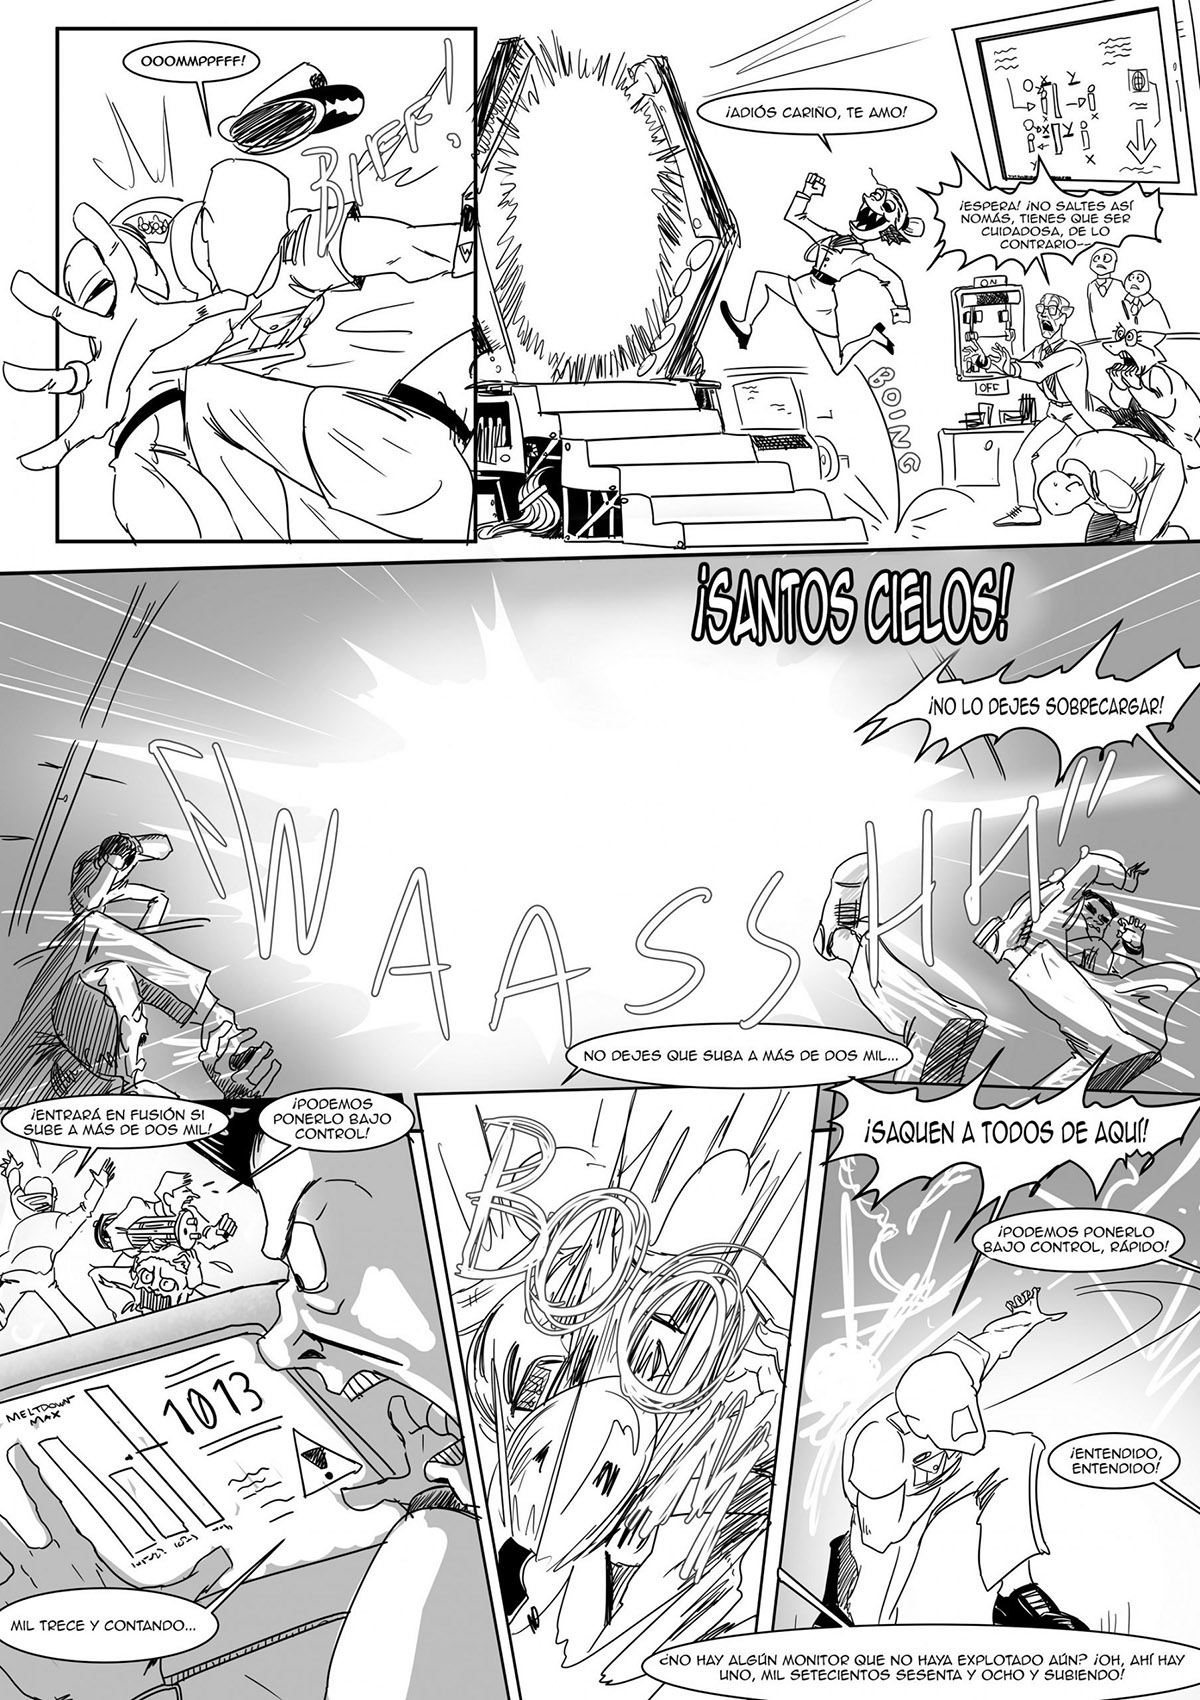 SPEAR of Just us parte 3